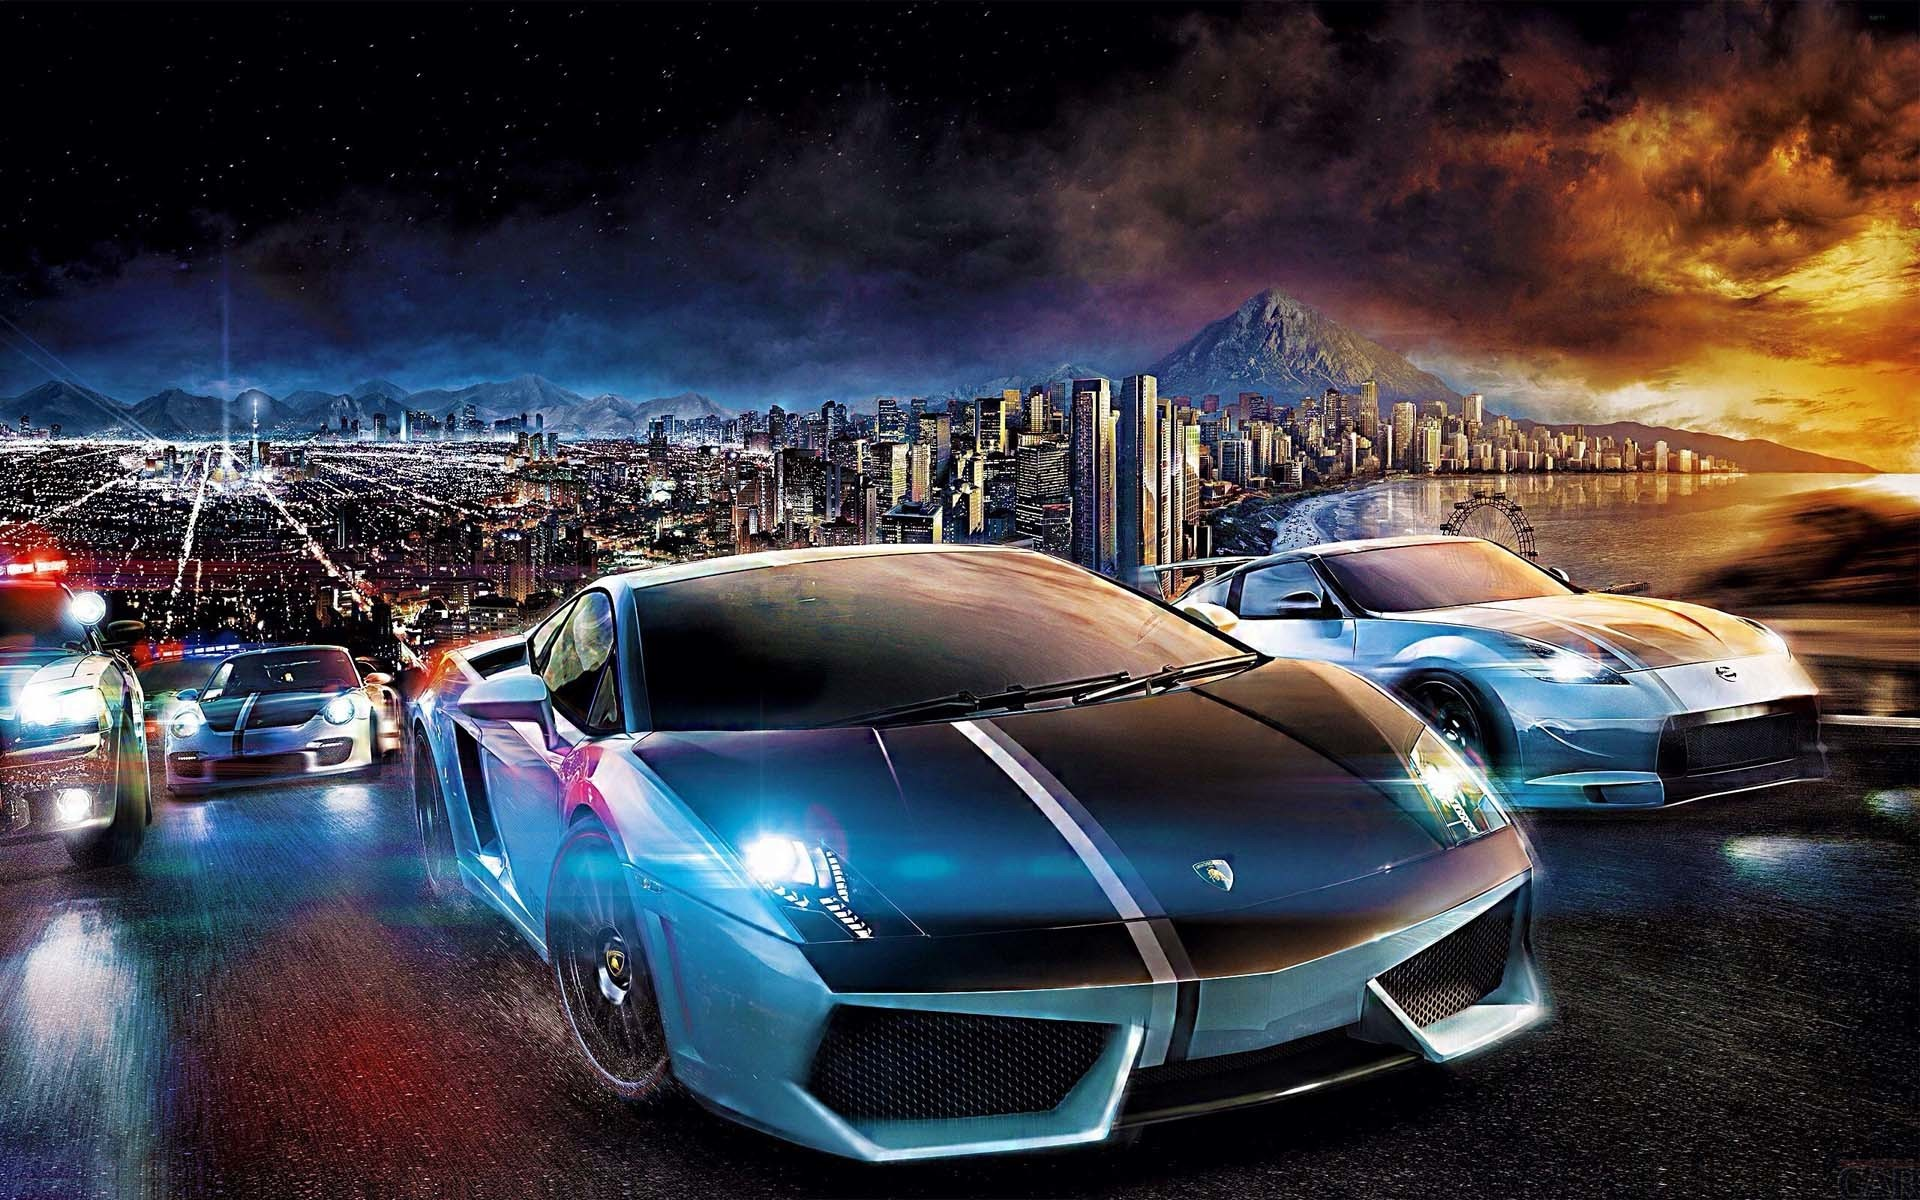 1920x1200 1920x1080 Street Racing Car Wallpapers Awesome Street Racing Cars Wallpapers  Ultra High Quality Wallpapers